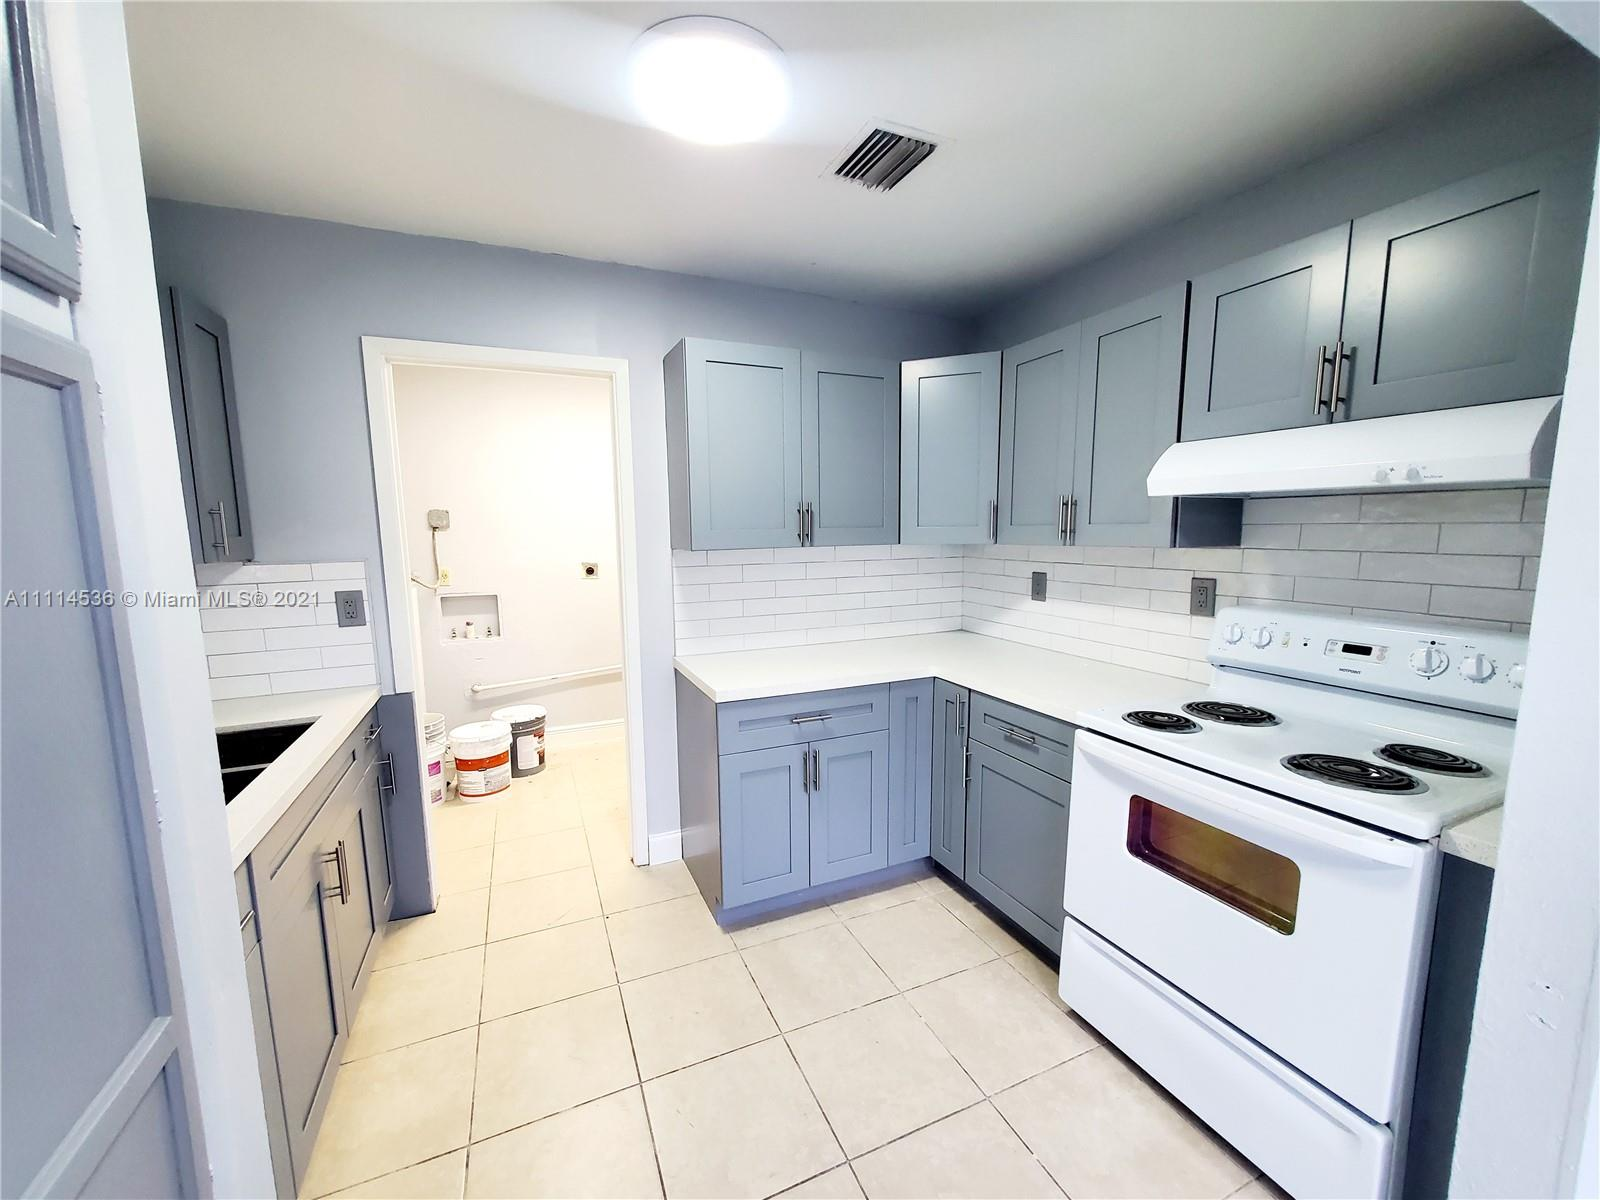 Single Family Home For Rent SOUTH MIAMI HEIGHTS 1ST A1,200 Sqft